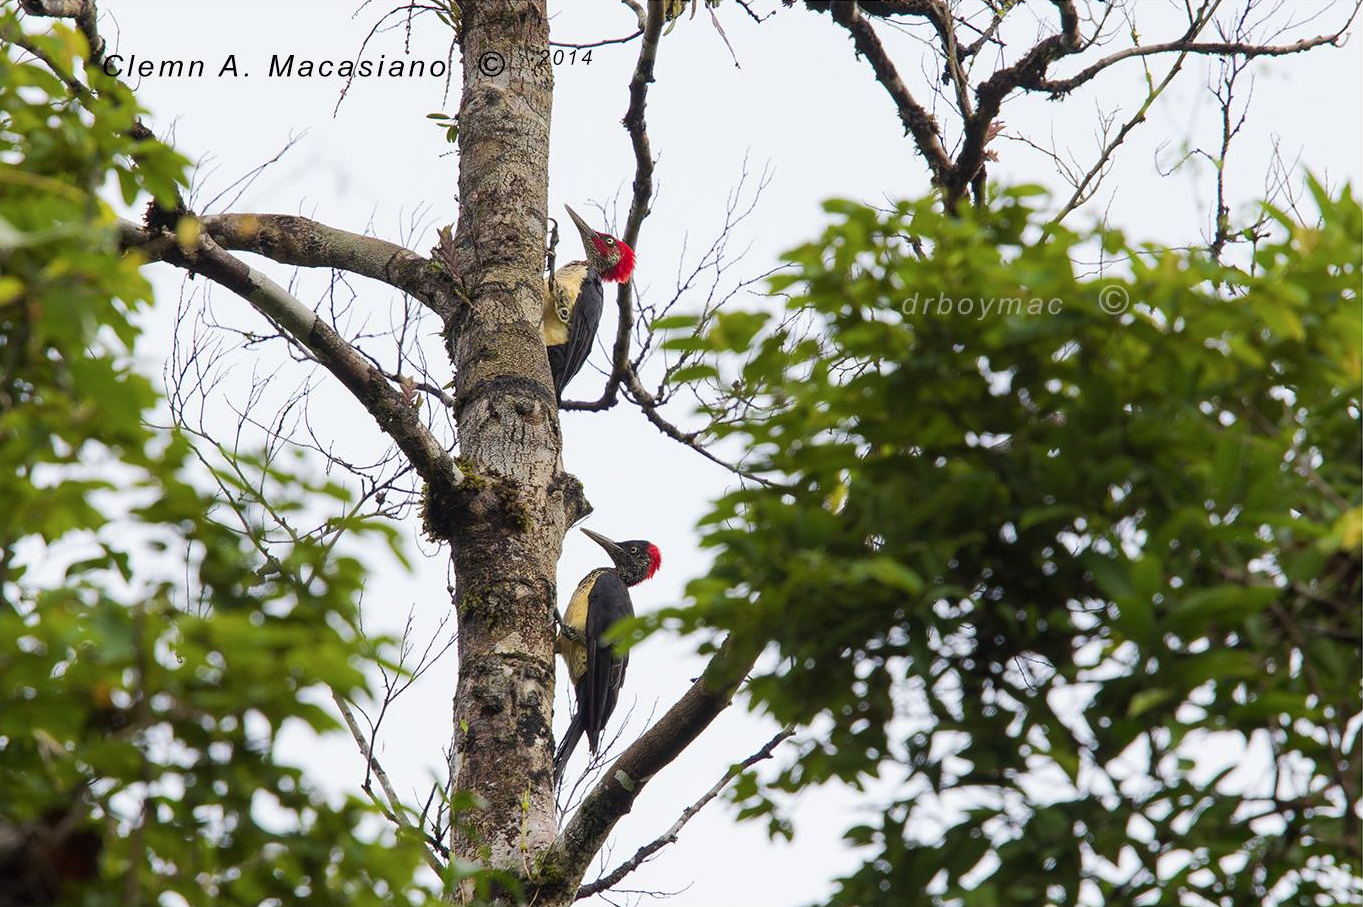 White-bellied Woodpecker Dryocopus javensis by Clemn Macasiano.